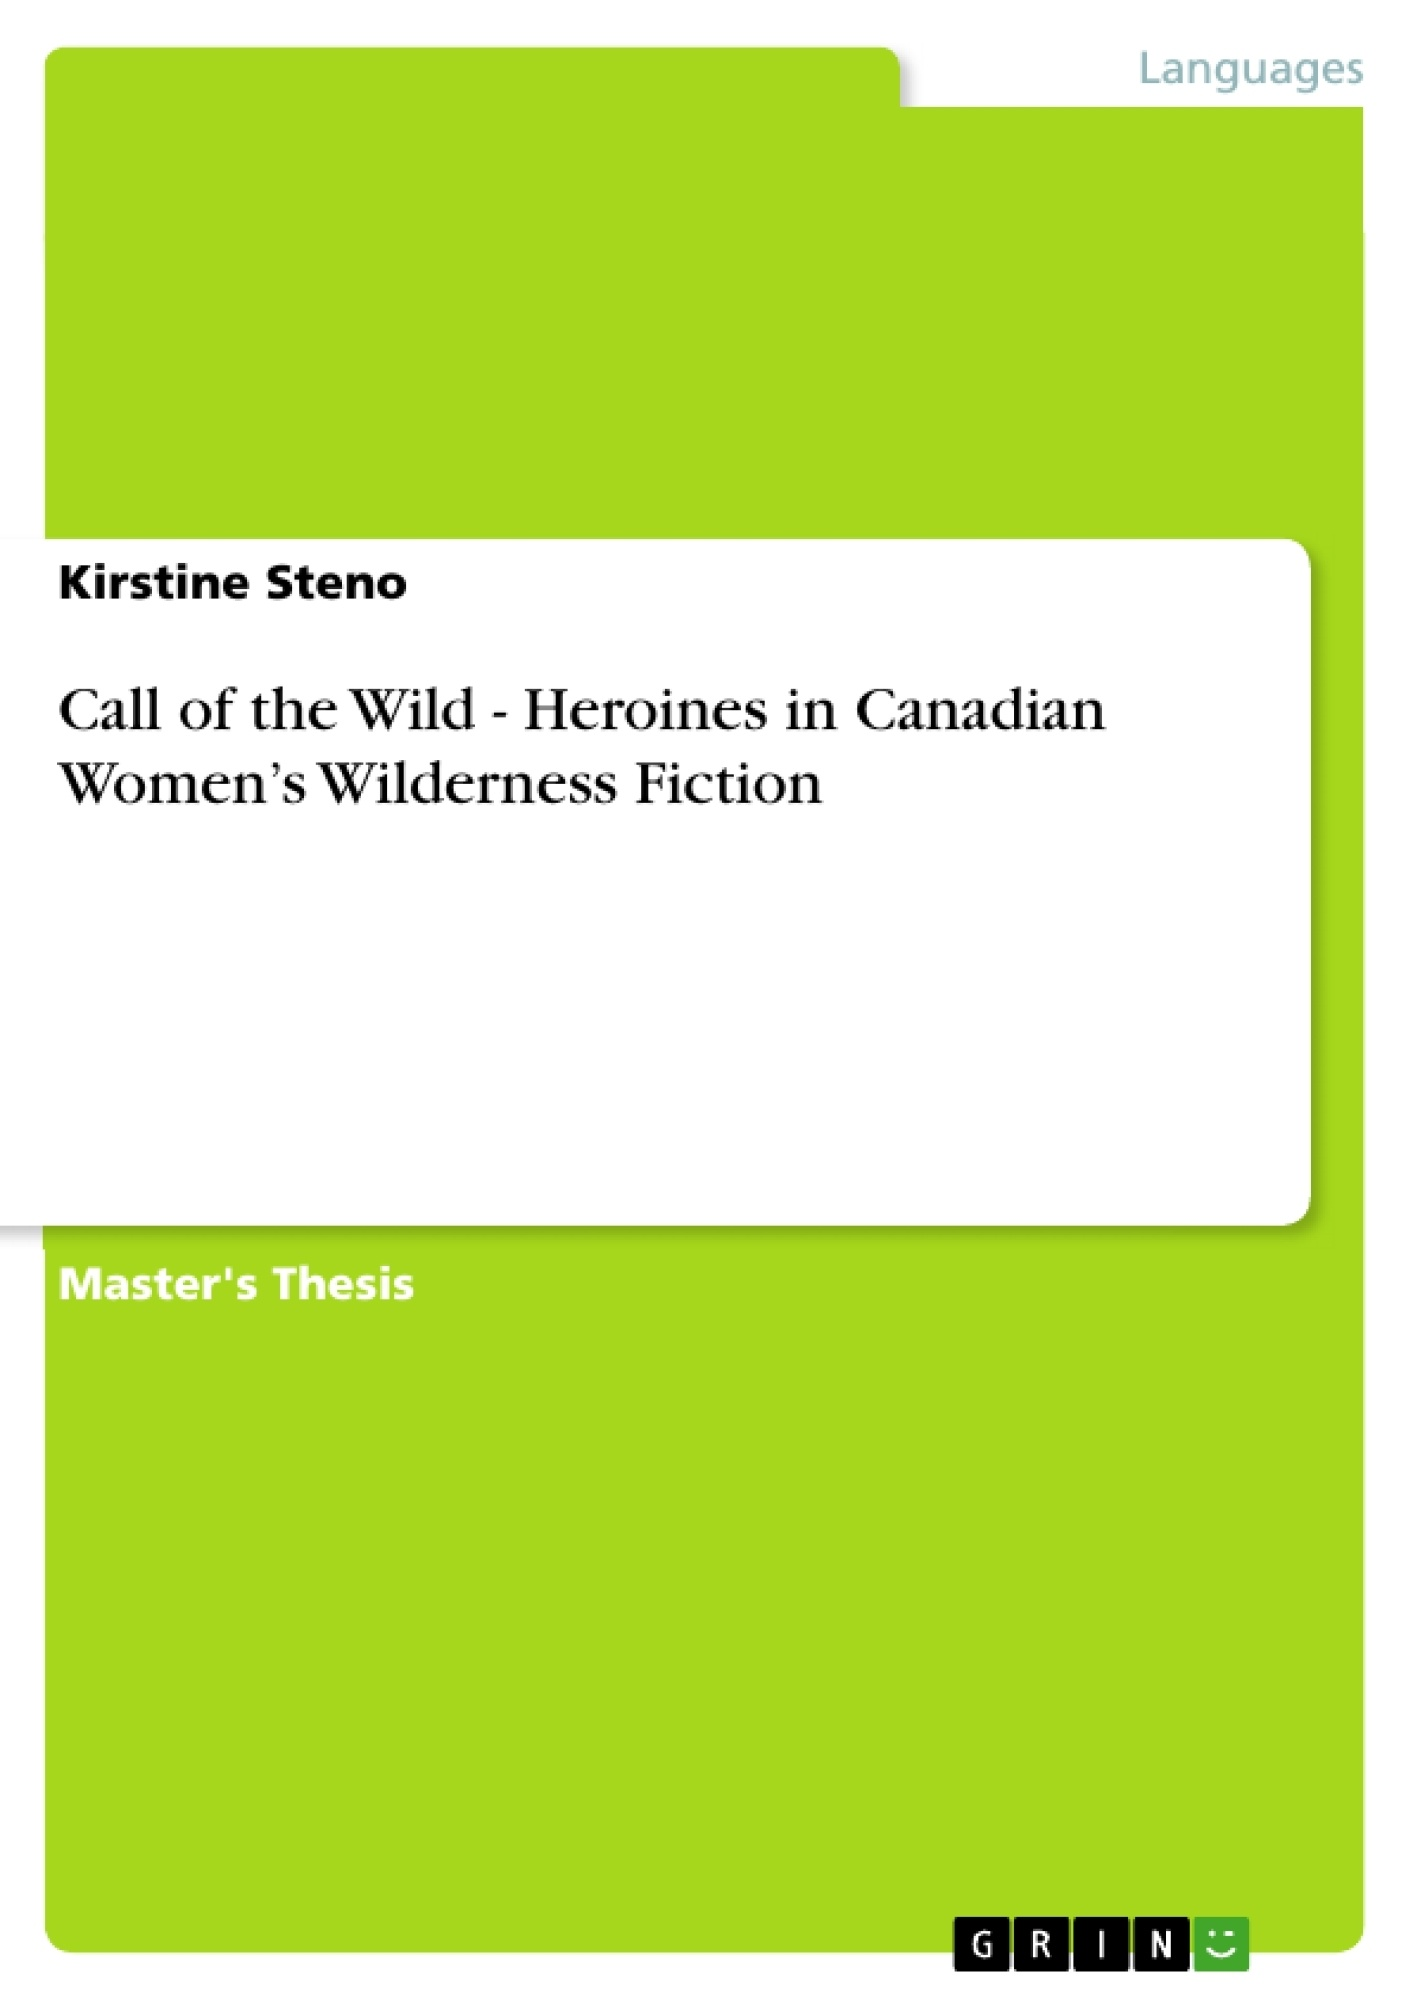 call of the wild heroines in canadian women s wilderness fiction call of the wild heroines in canadian women s wilderness fiction publish your master s thesis bachelor s thesis essay or term paper